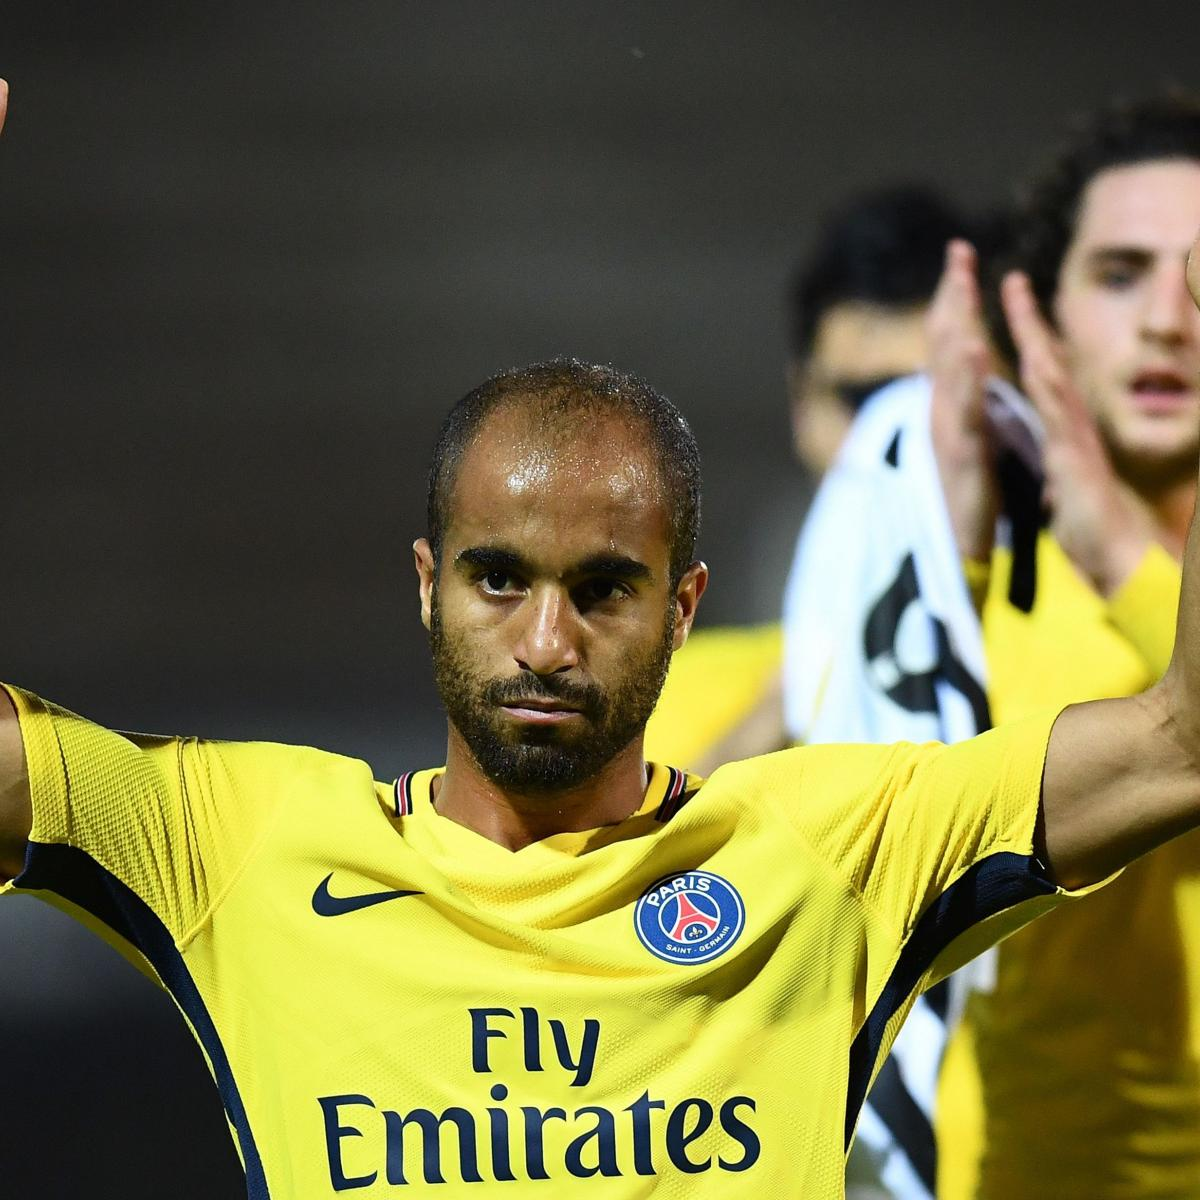 Lucas Moura Equipos Actuales: Tottenham Transfer News: Latest Rumours On Lucas Moura And